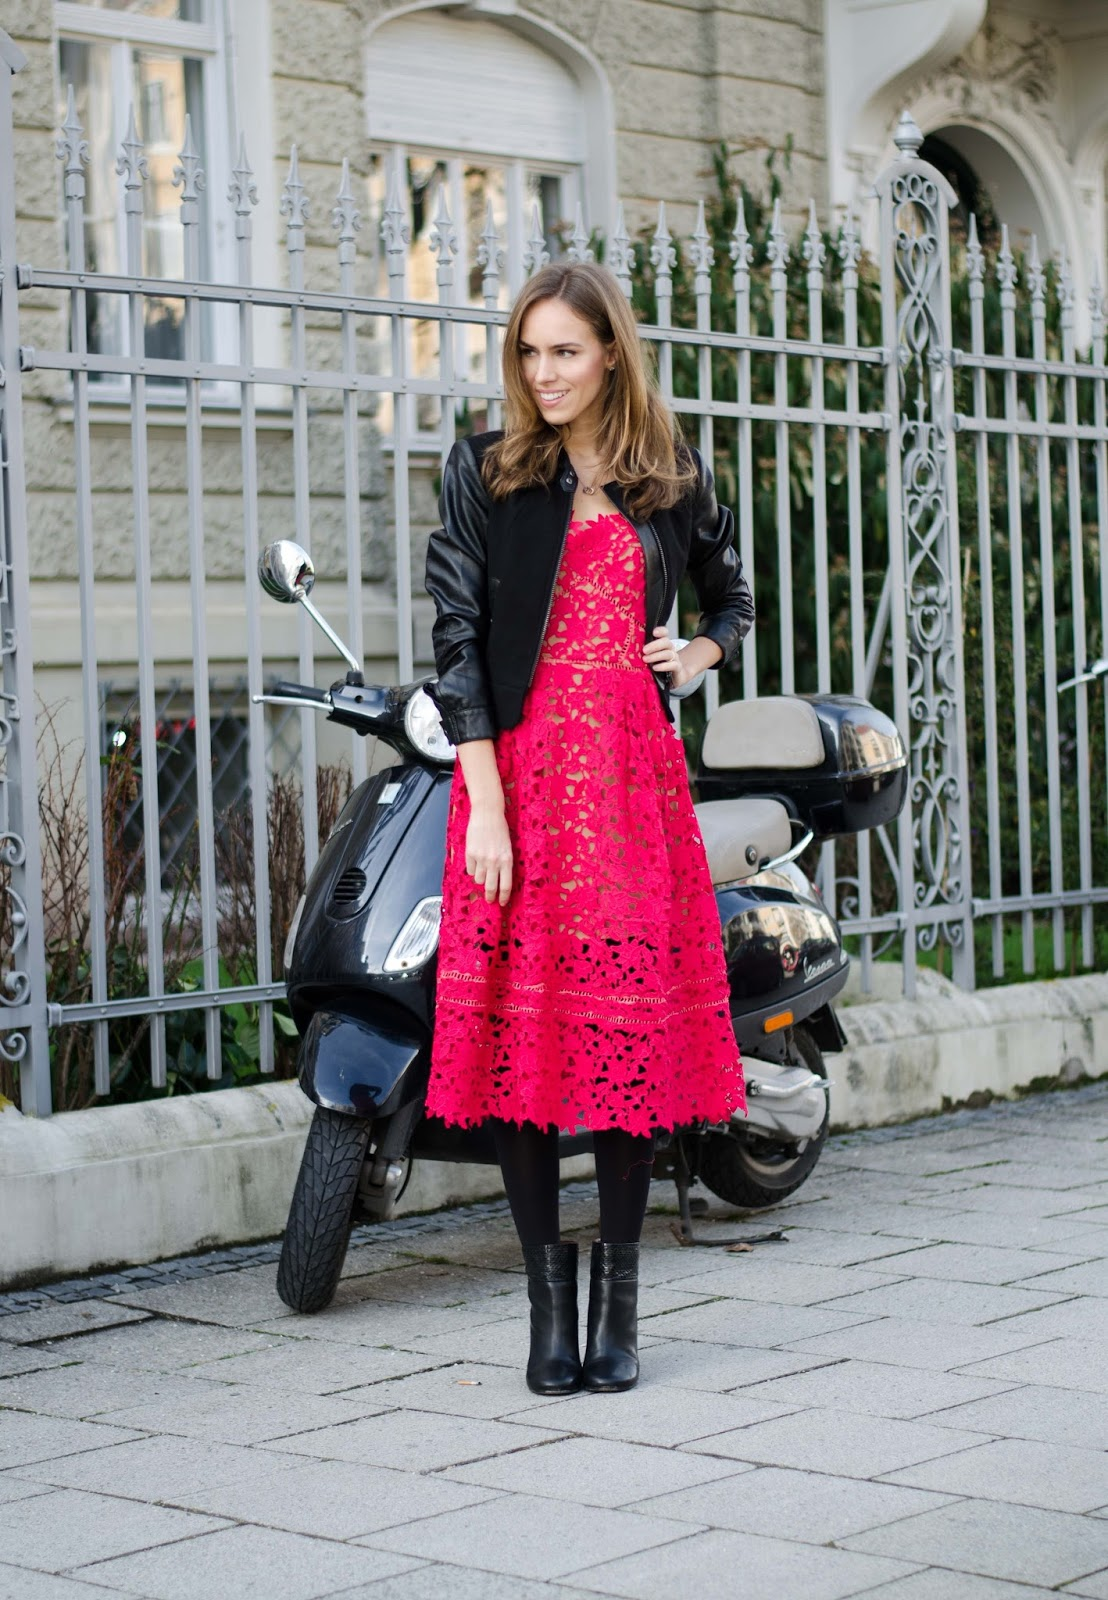 kristjaana mere red lace dress black jacket valentines day outfit